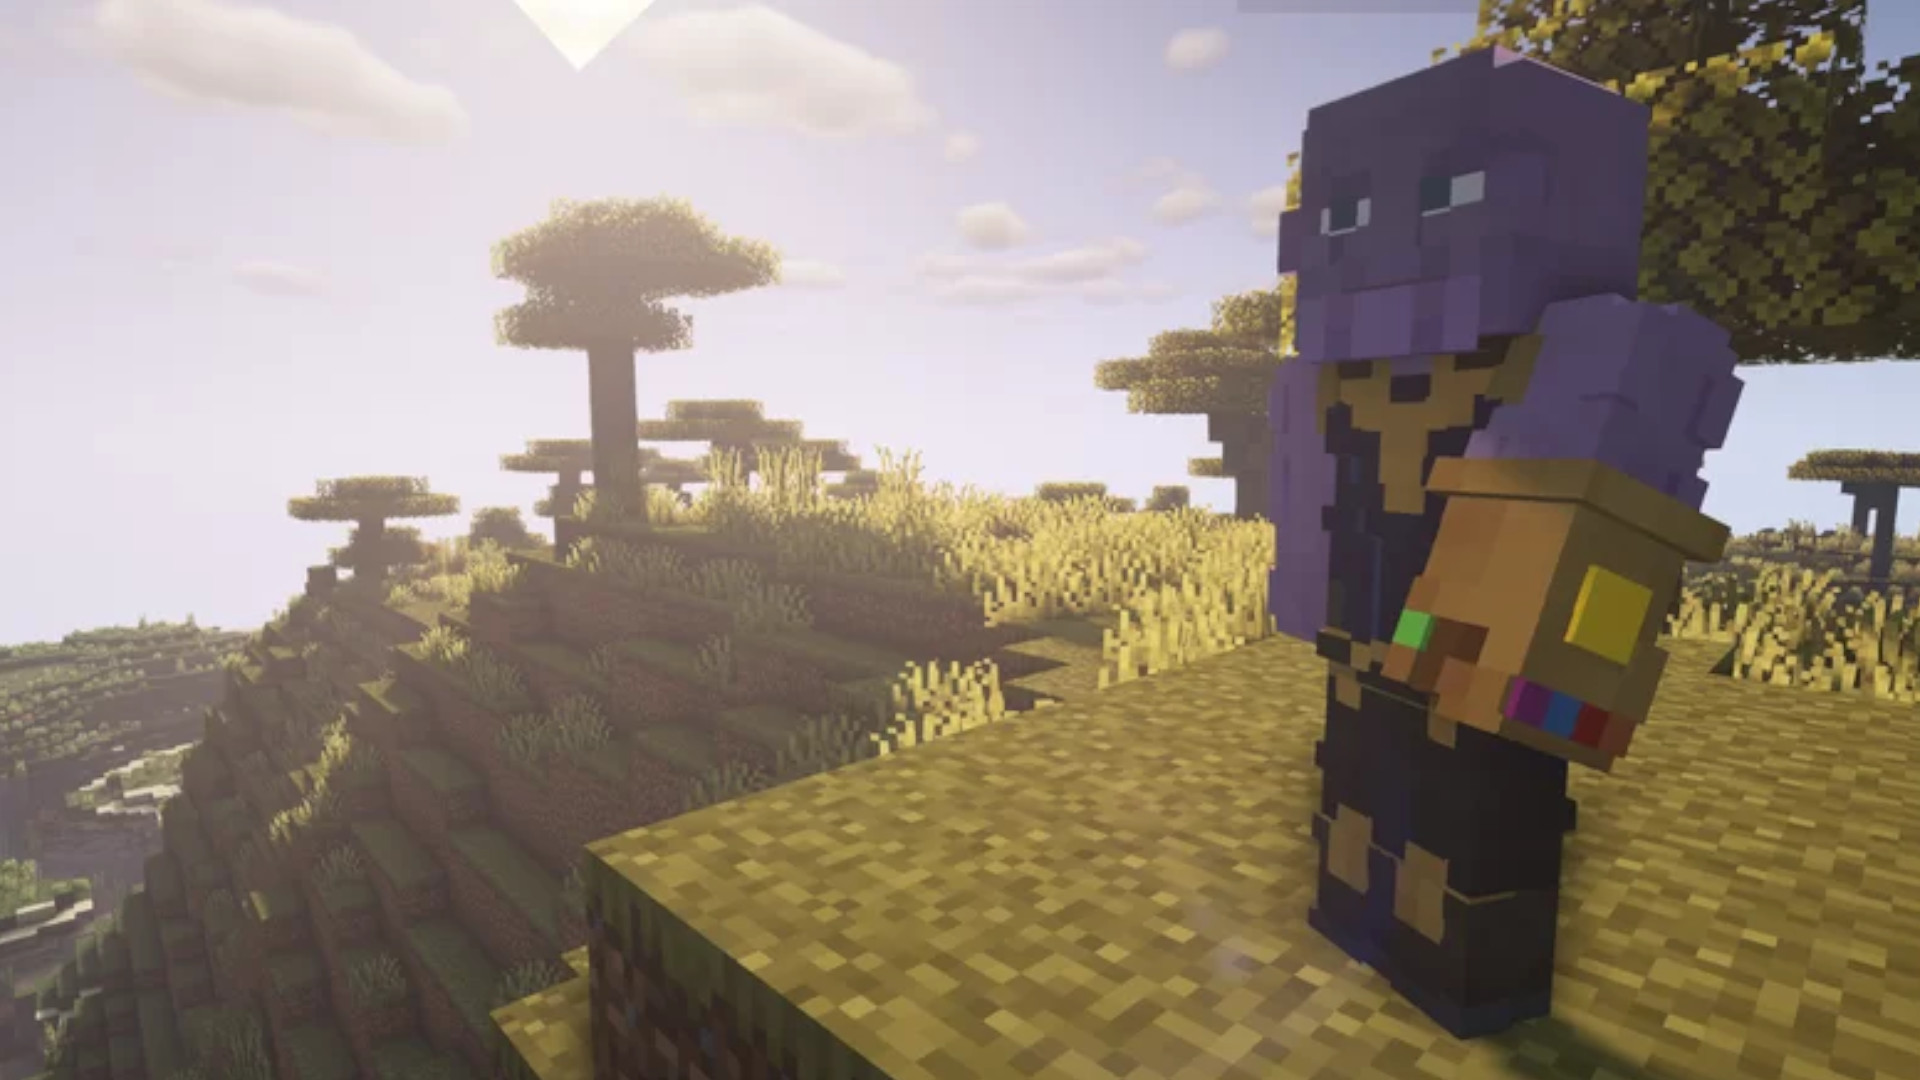 You can now use the Infinity Gauntlet in Minecraft